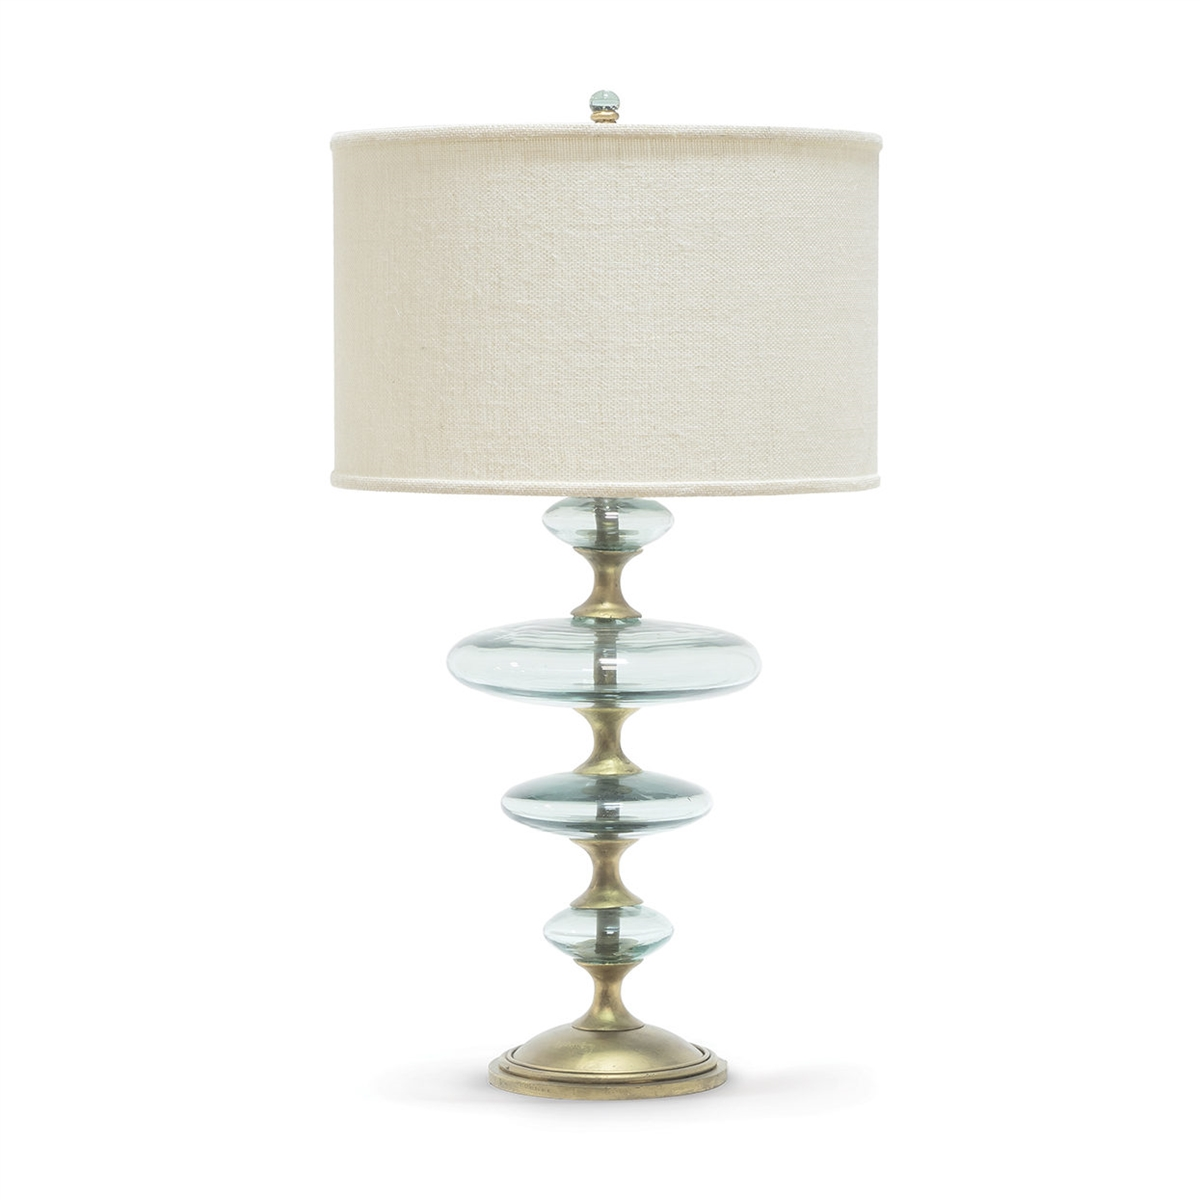 Palecek Calypso Glass Table Lamp 2594 86